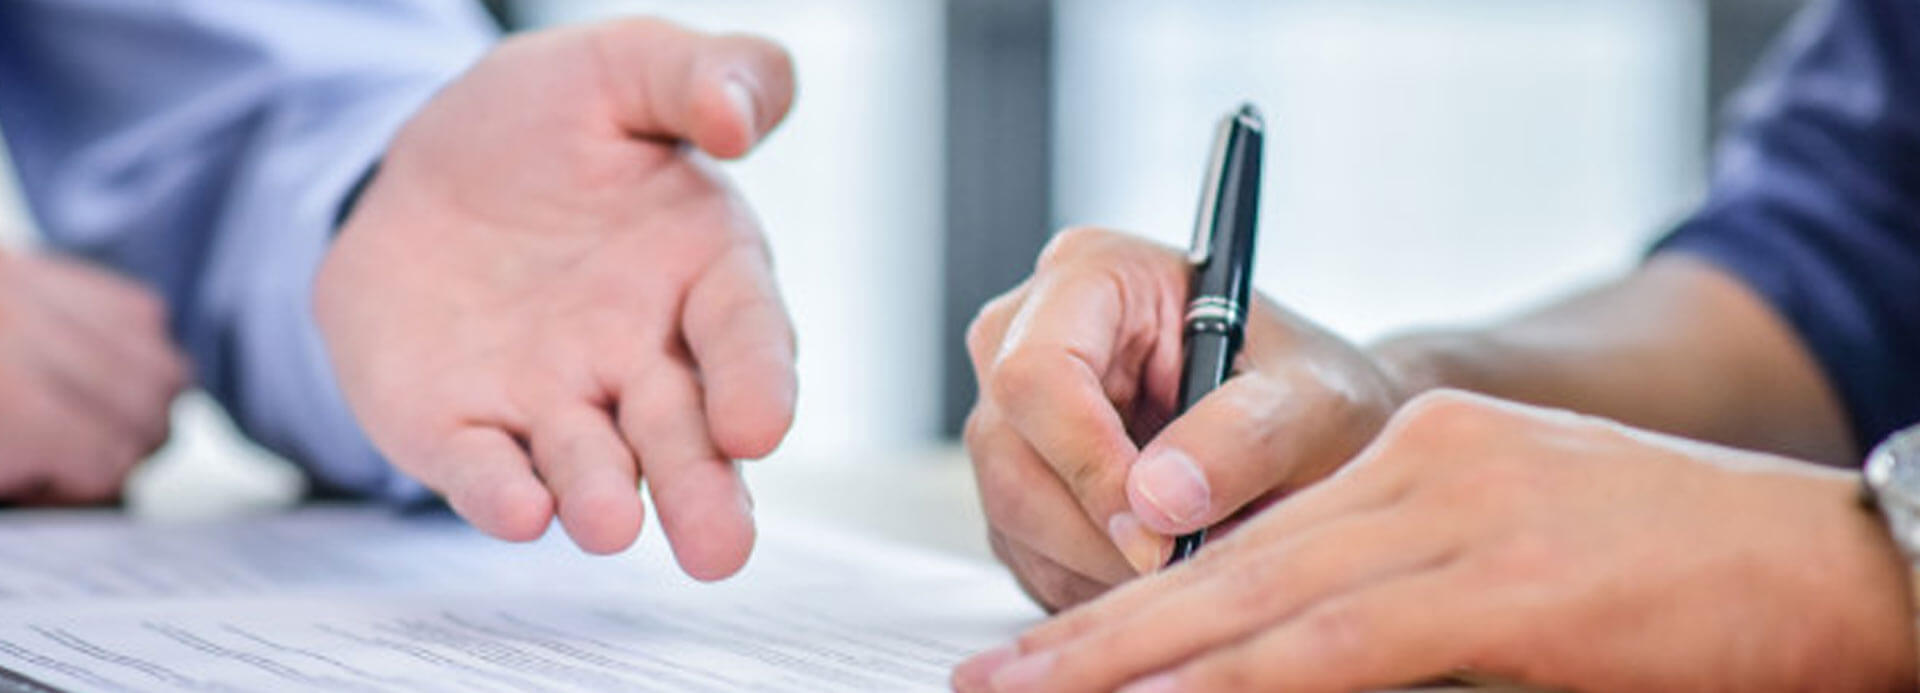 prenuptial agreements The Law office of John Vermon Moore